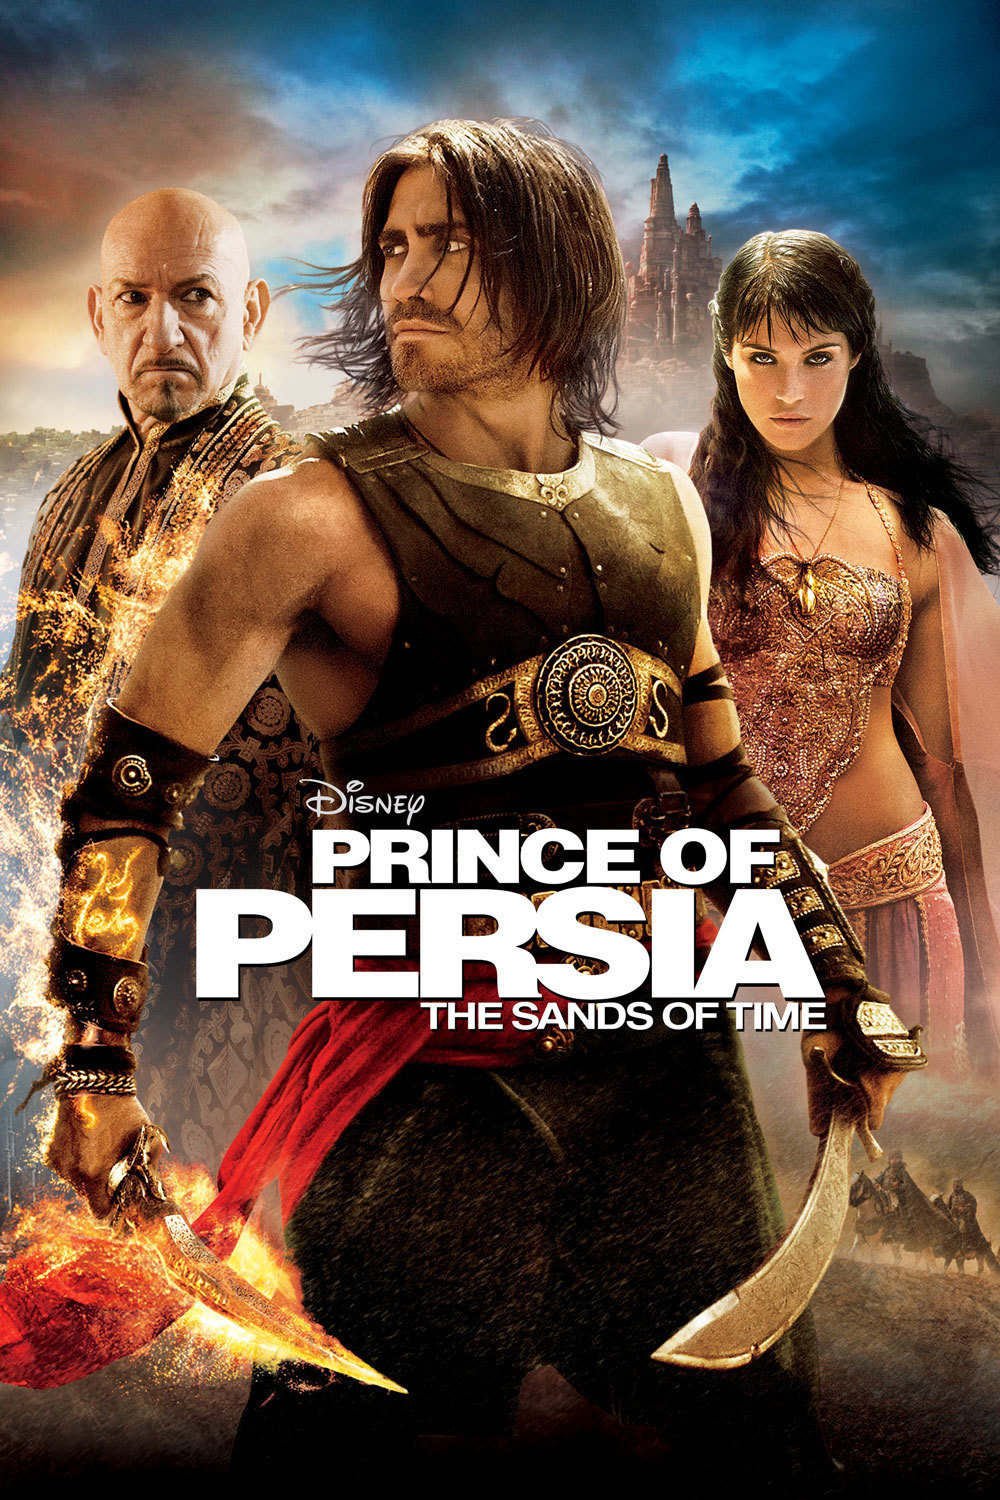 prince of persia sands of time A prince must stop a despot from unleashing a sandstorm that could destroy all mankind.